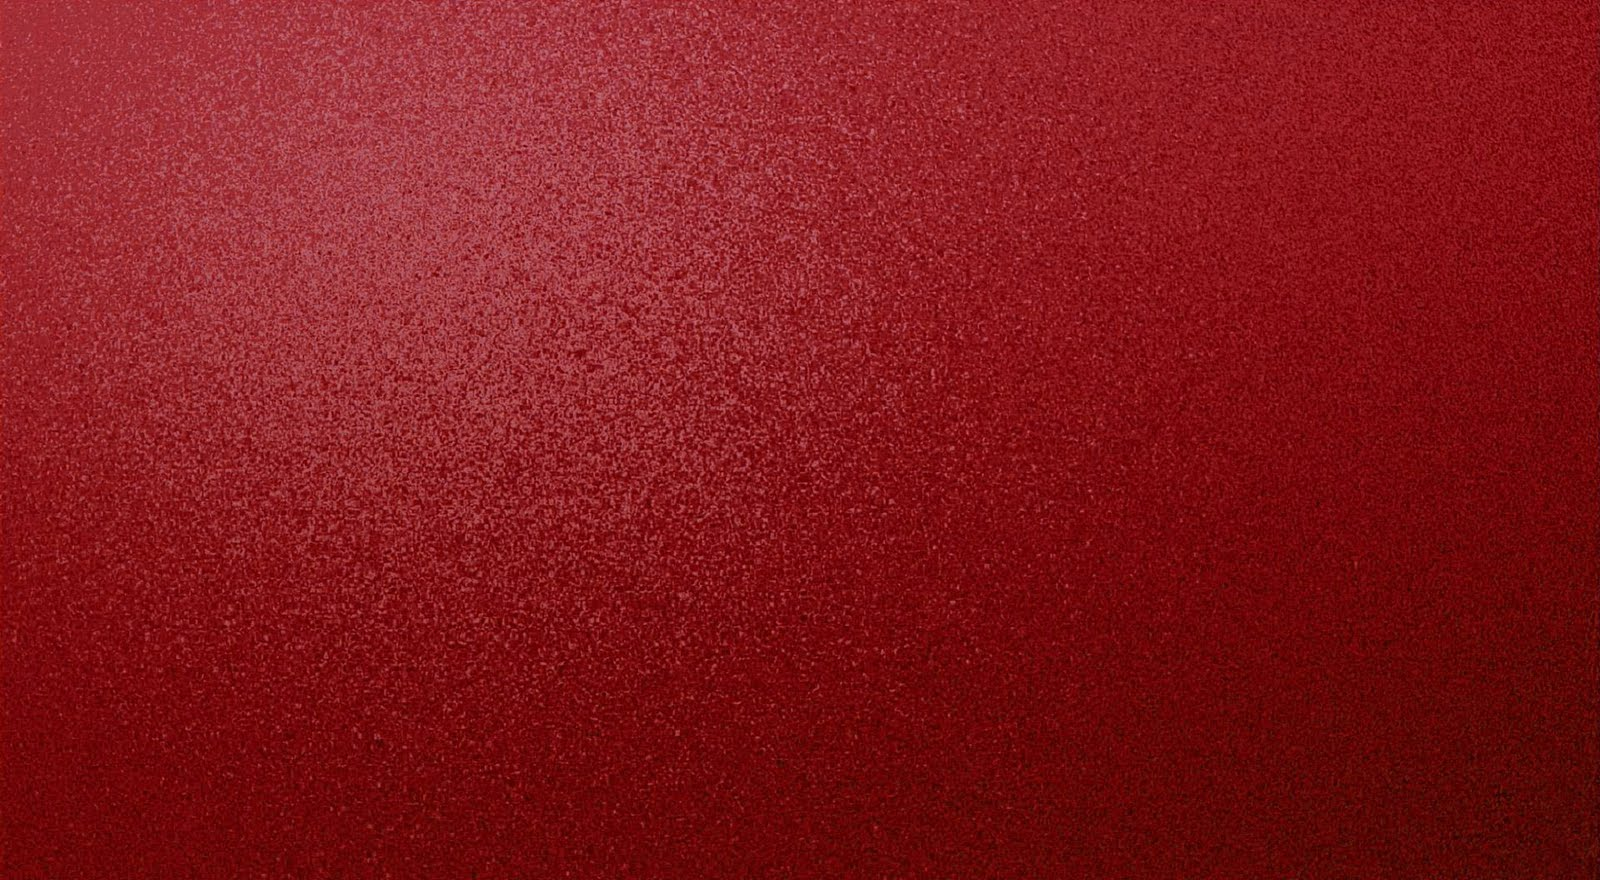 Wallpaper Backgrounds Red Texture Wallpapers 1600x880